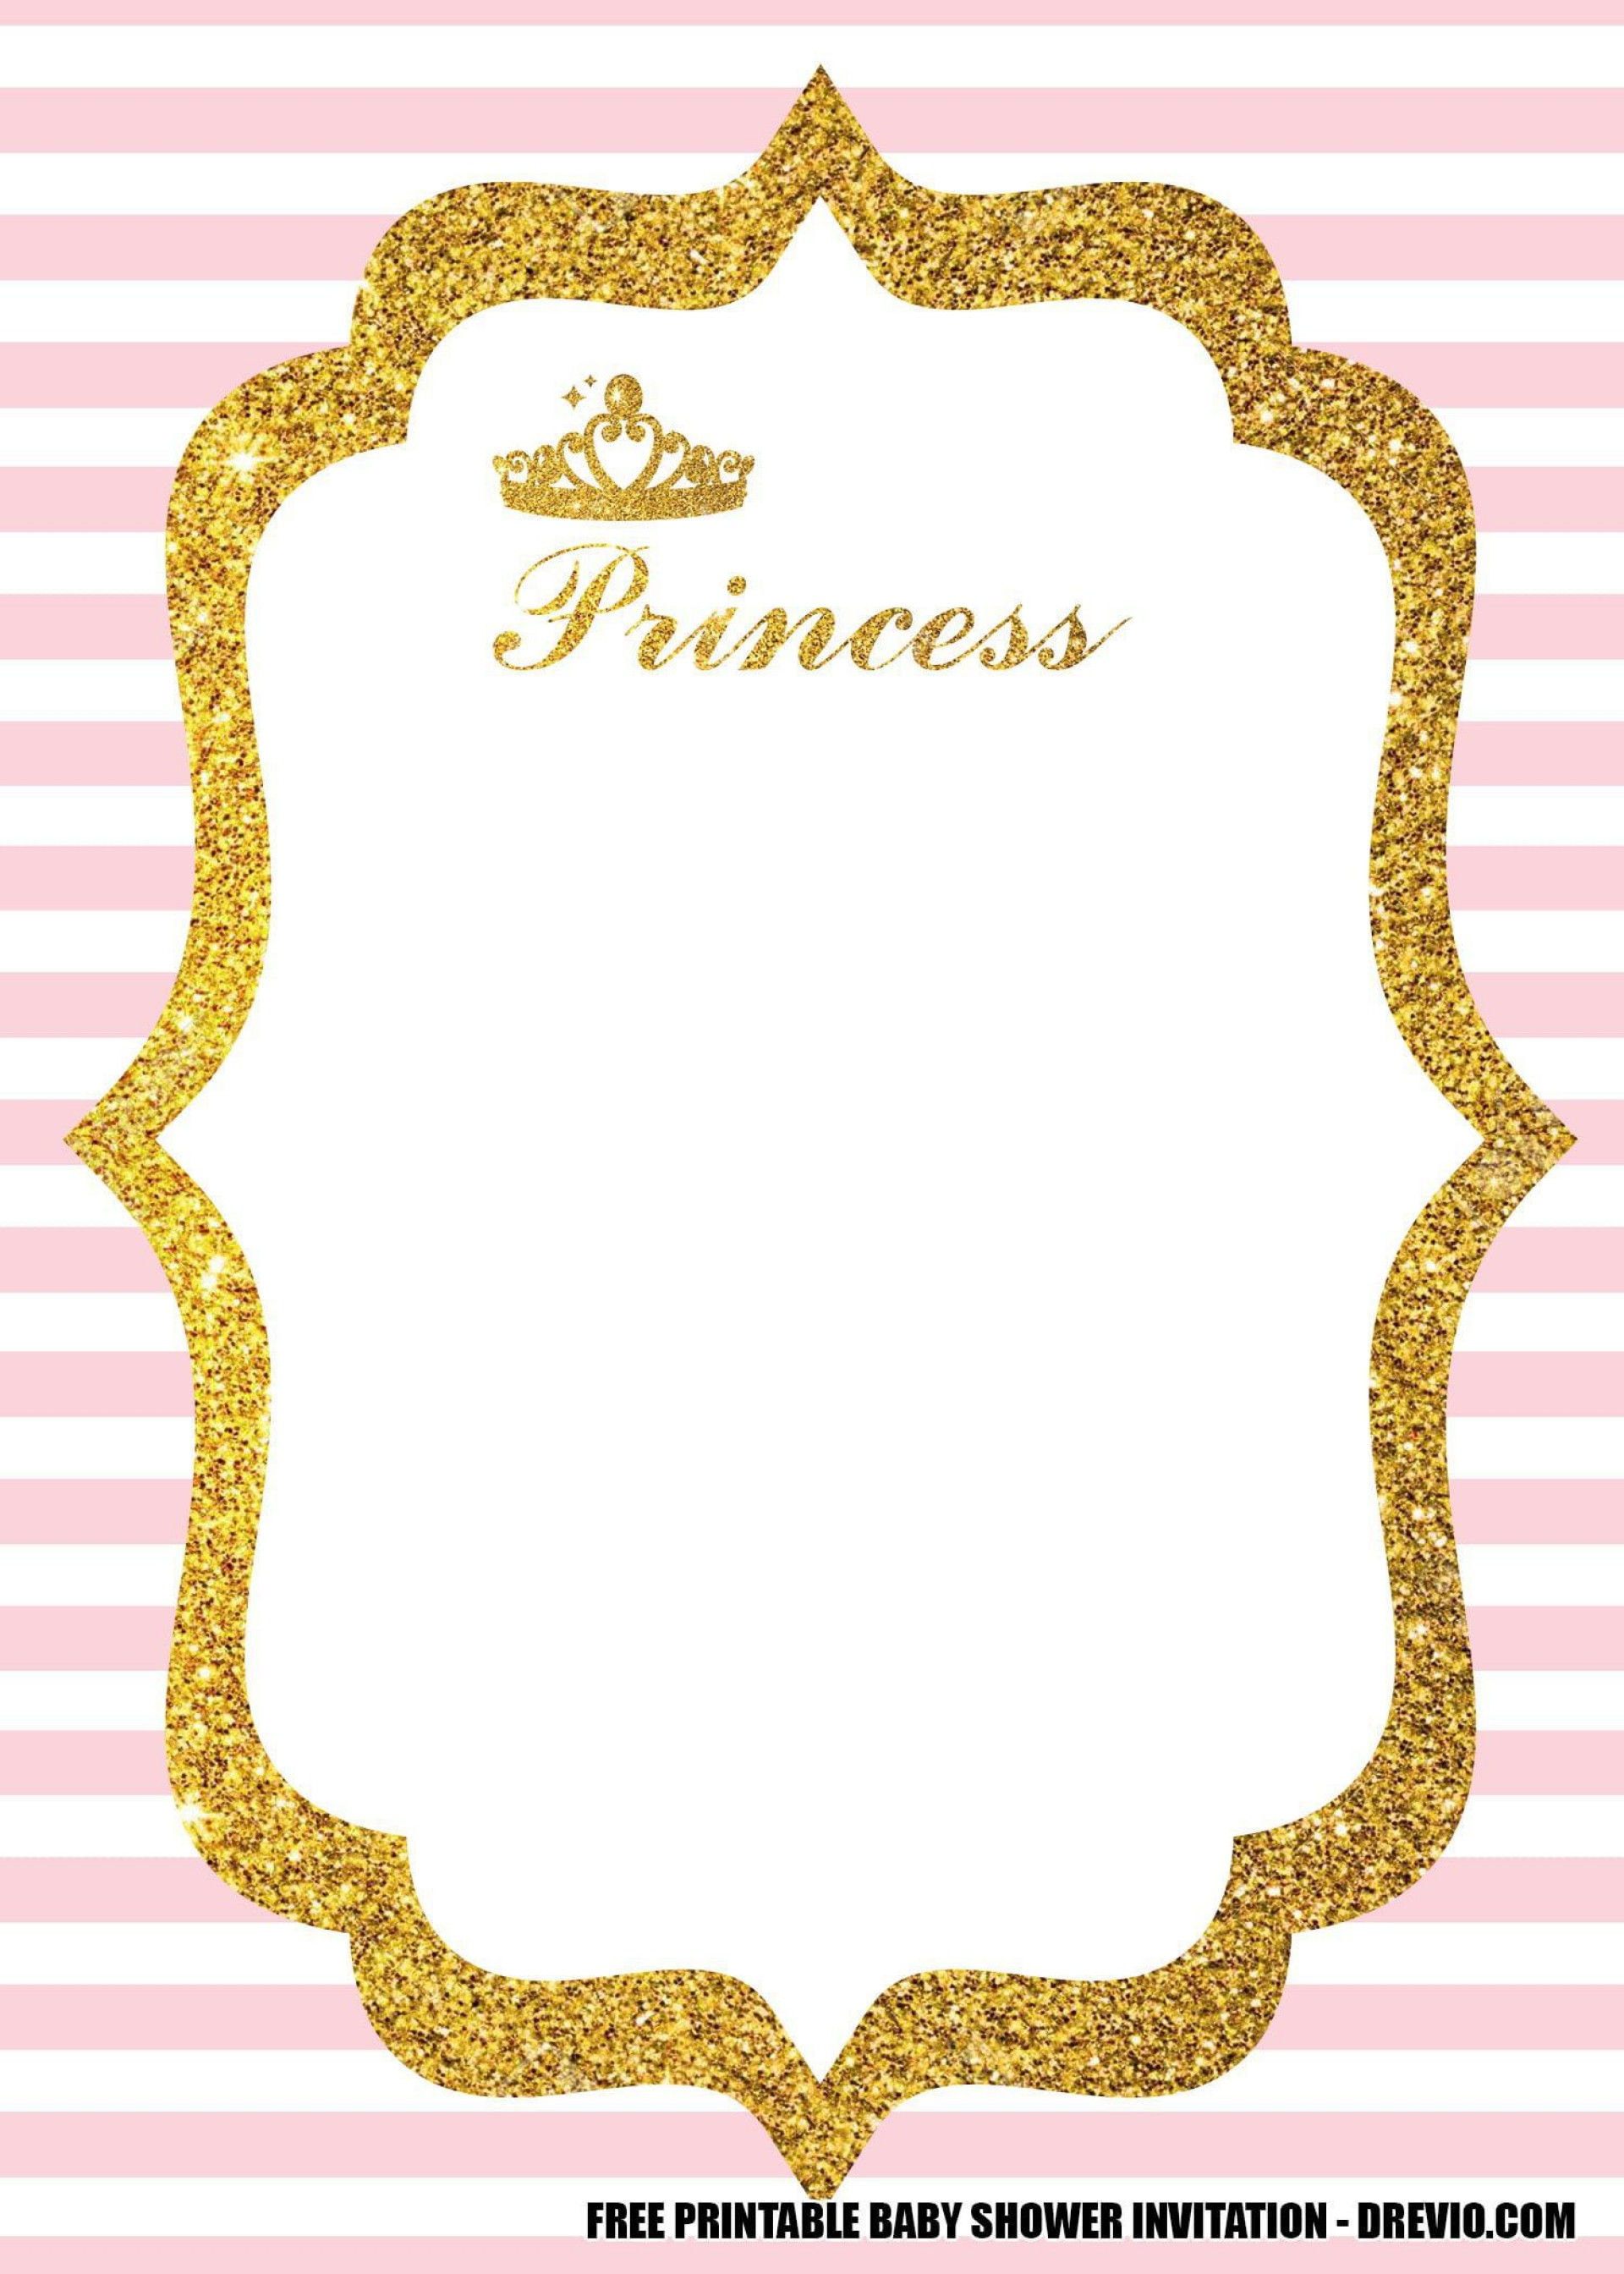 008 Stunning Free Princes Baby Shower Invitation Template For Word Image 1920